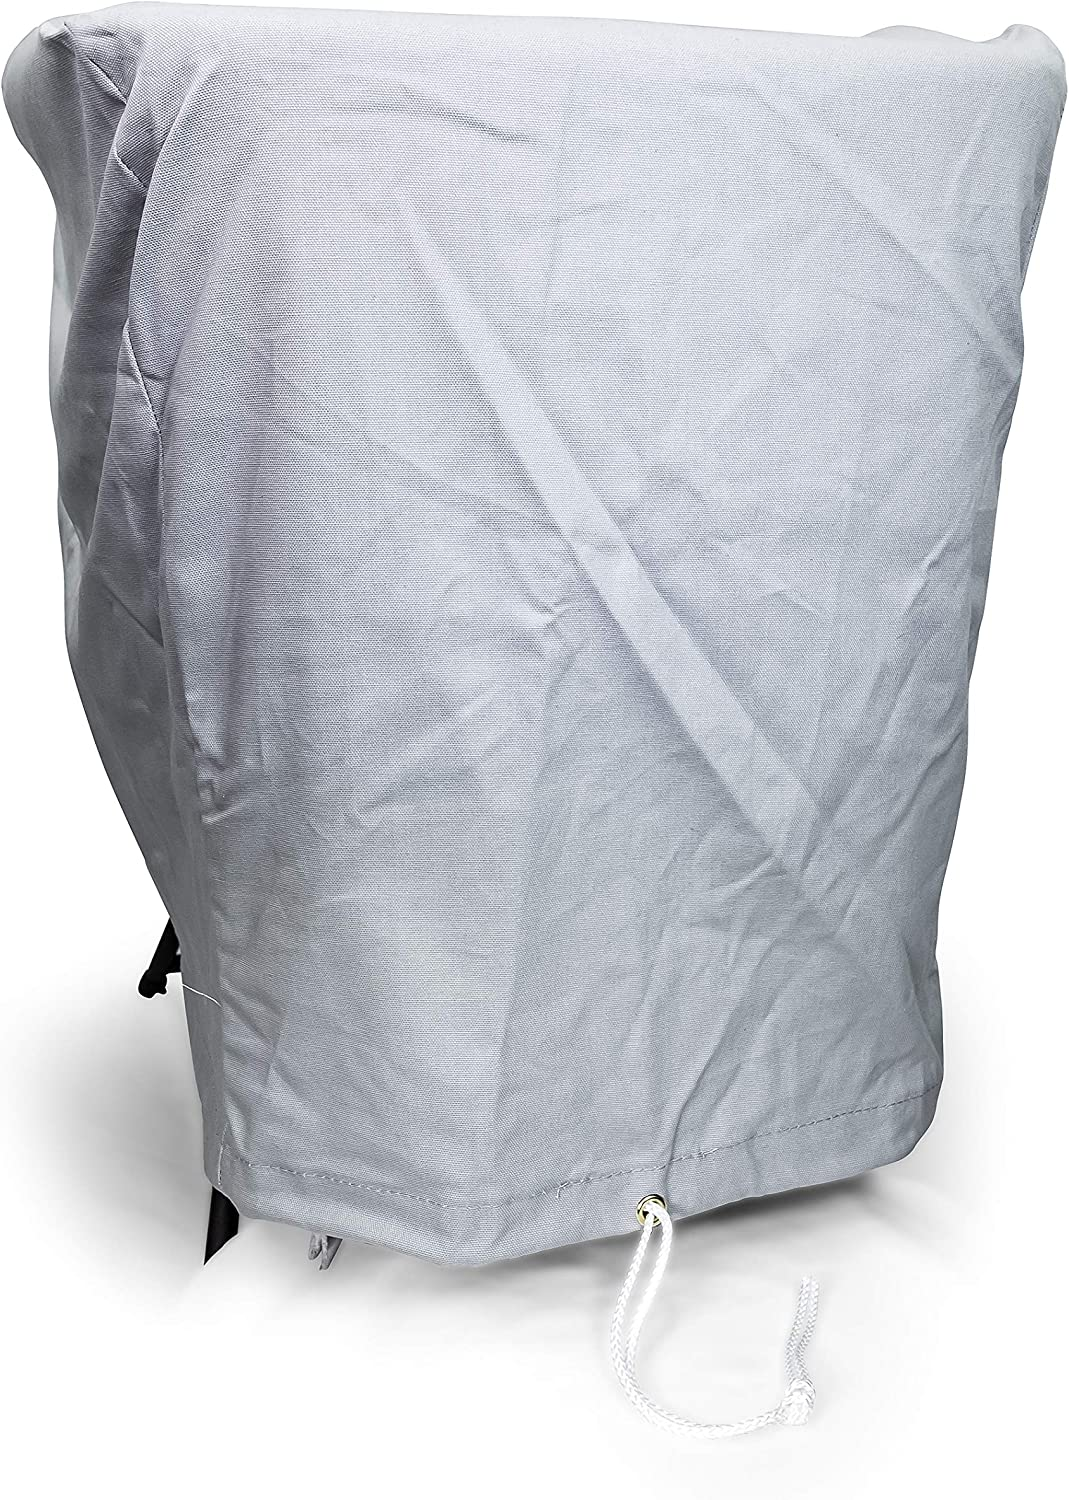 Camco 50127 Outboard Boat Motor Cover - for Motors Up to 50-115 HP - Features a Draw Cord for Easy Fastening, Gray